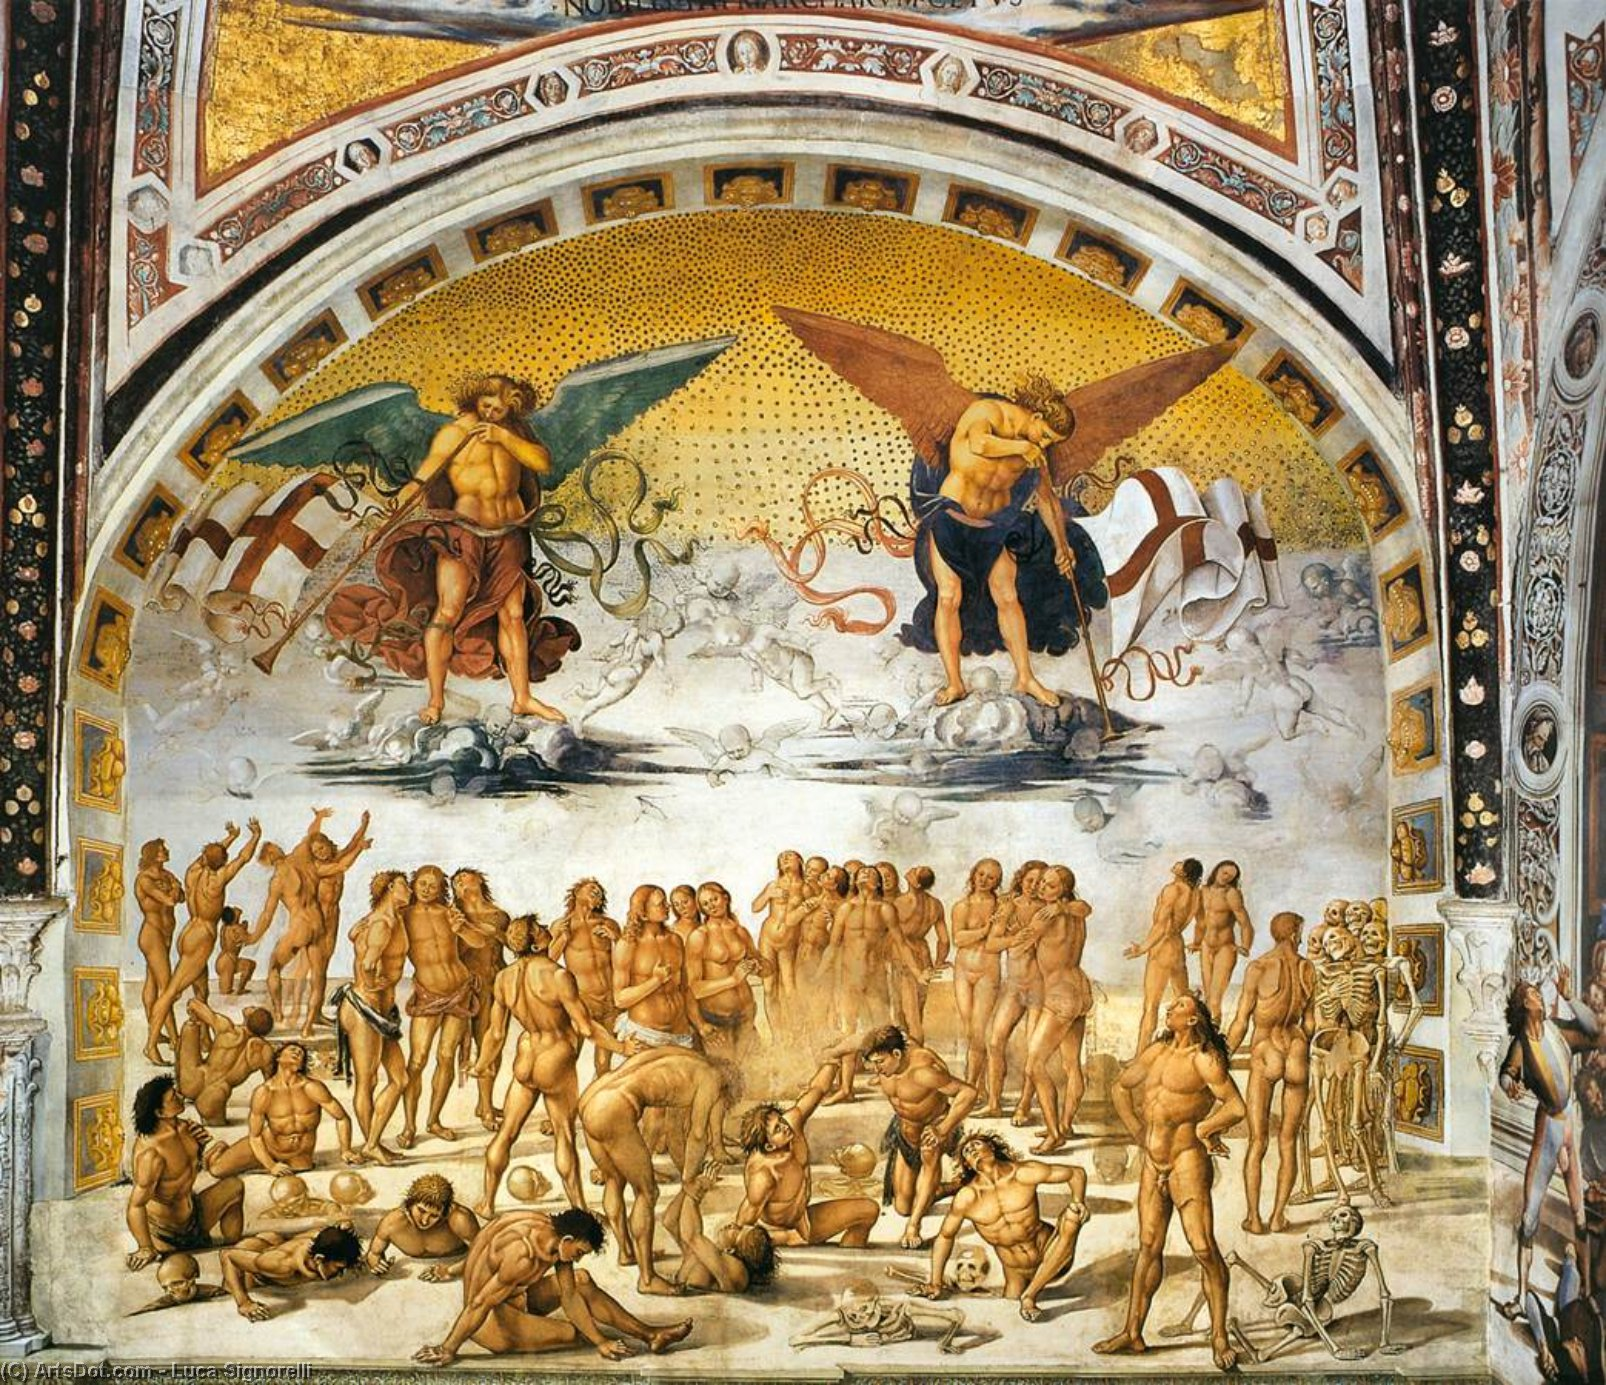 Resurrection of the Flesh by Luca Signorelli (1450-1523, Italy)